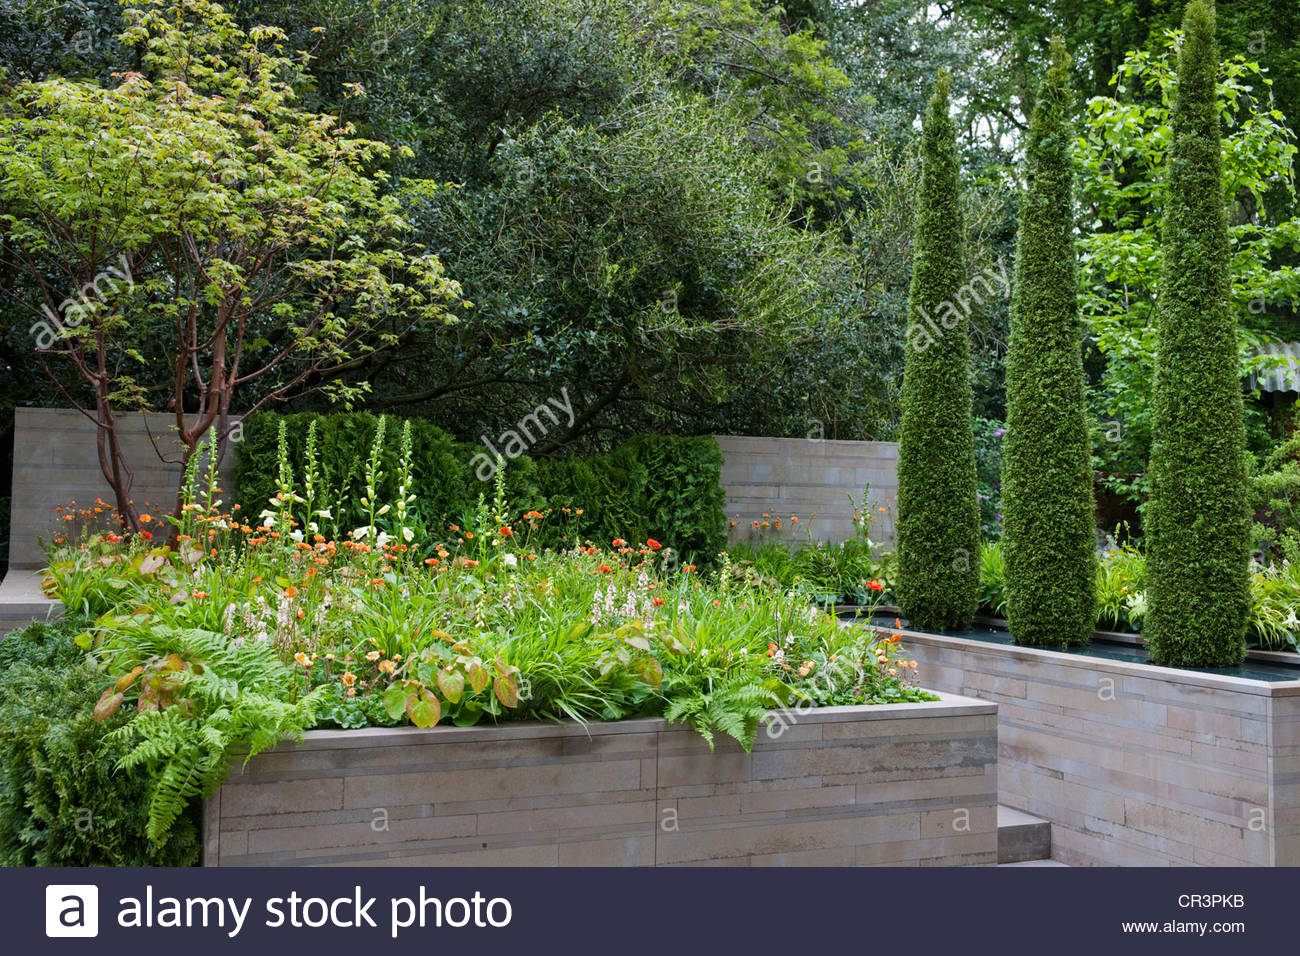 High Quality Stock Photo   The APCO Garden (Artisan Garden) By Willmott Whyte A RHS  Chelsea Flower Show 2012